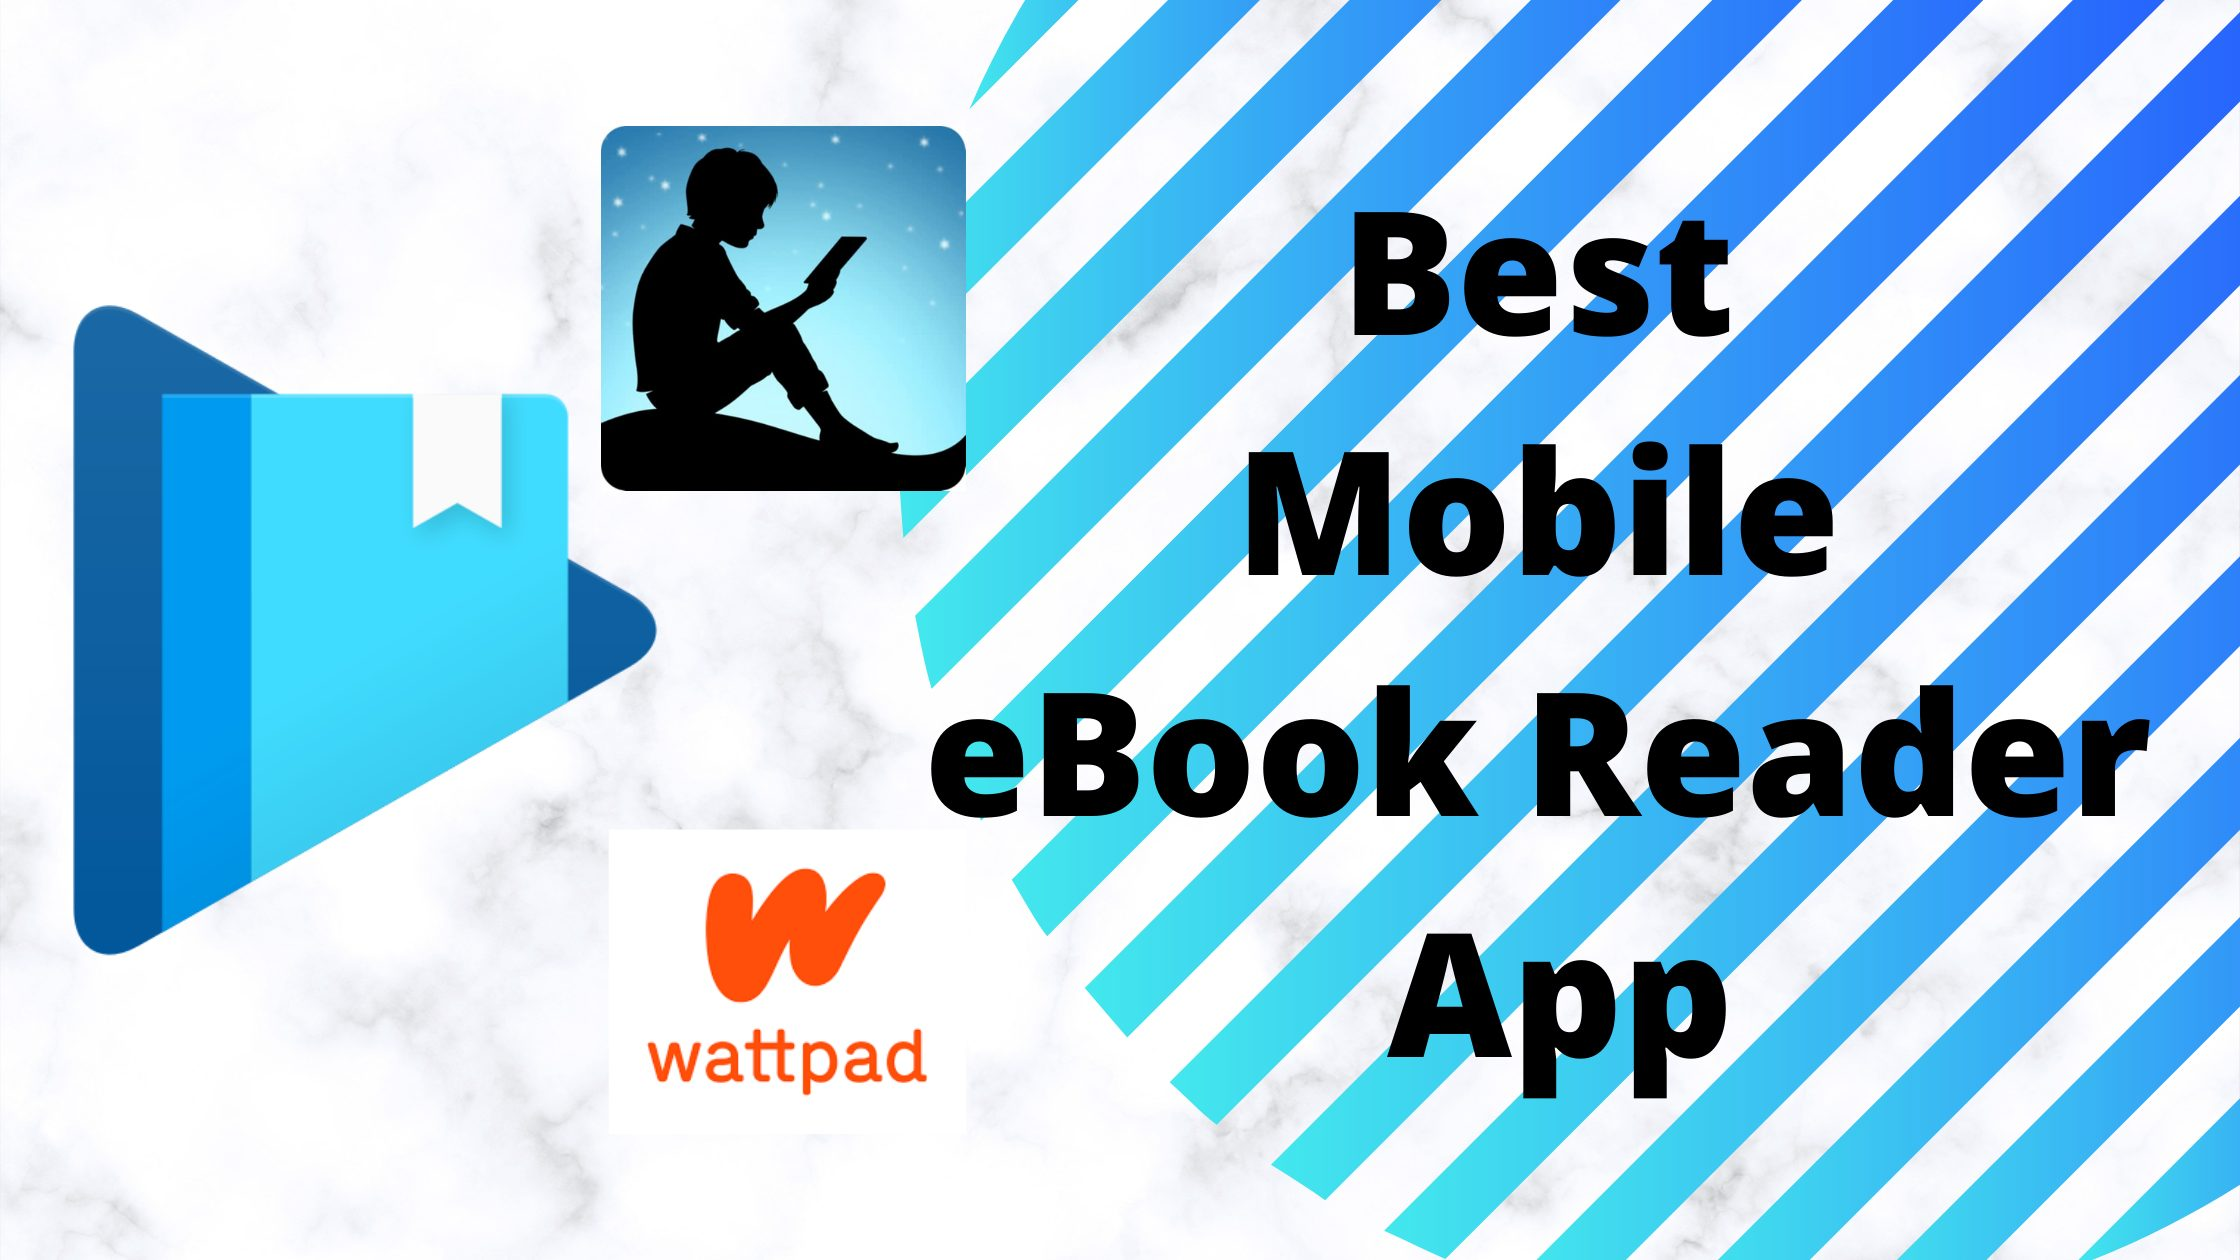 Best Mobile eBook Reader App